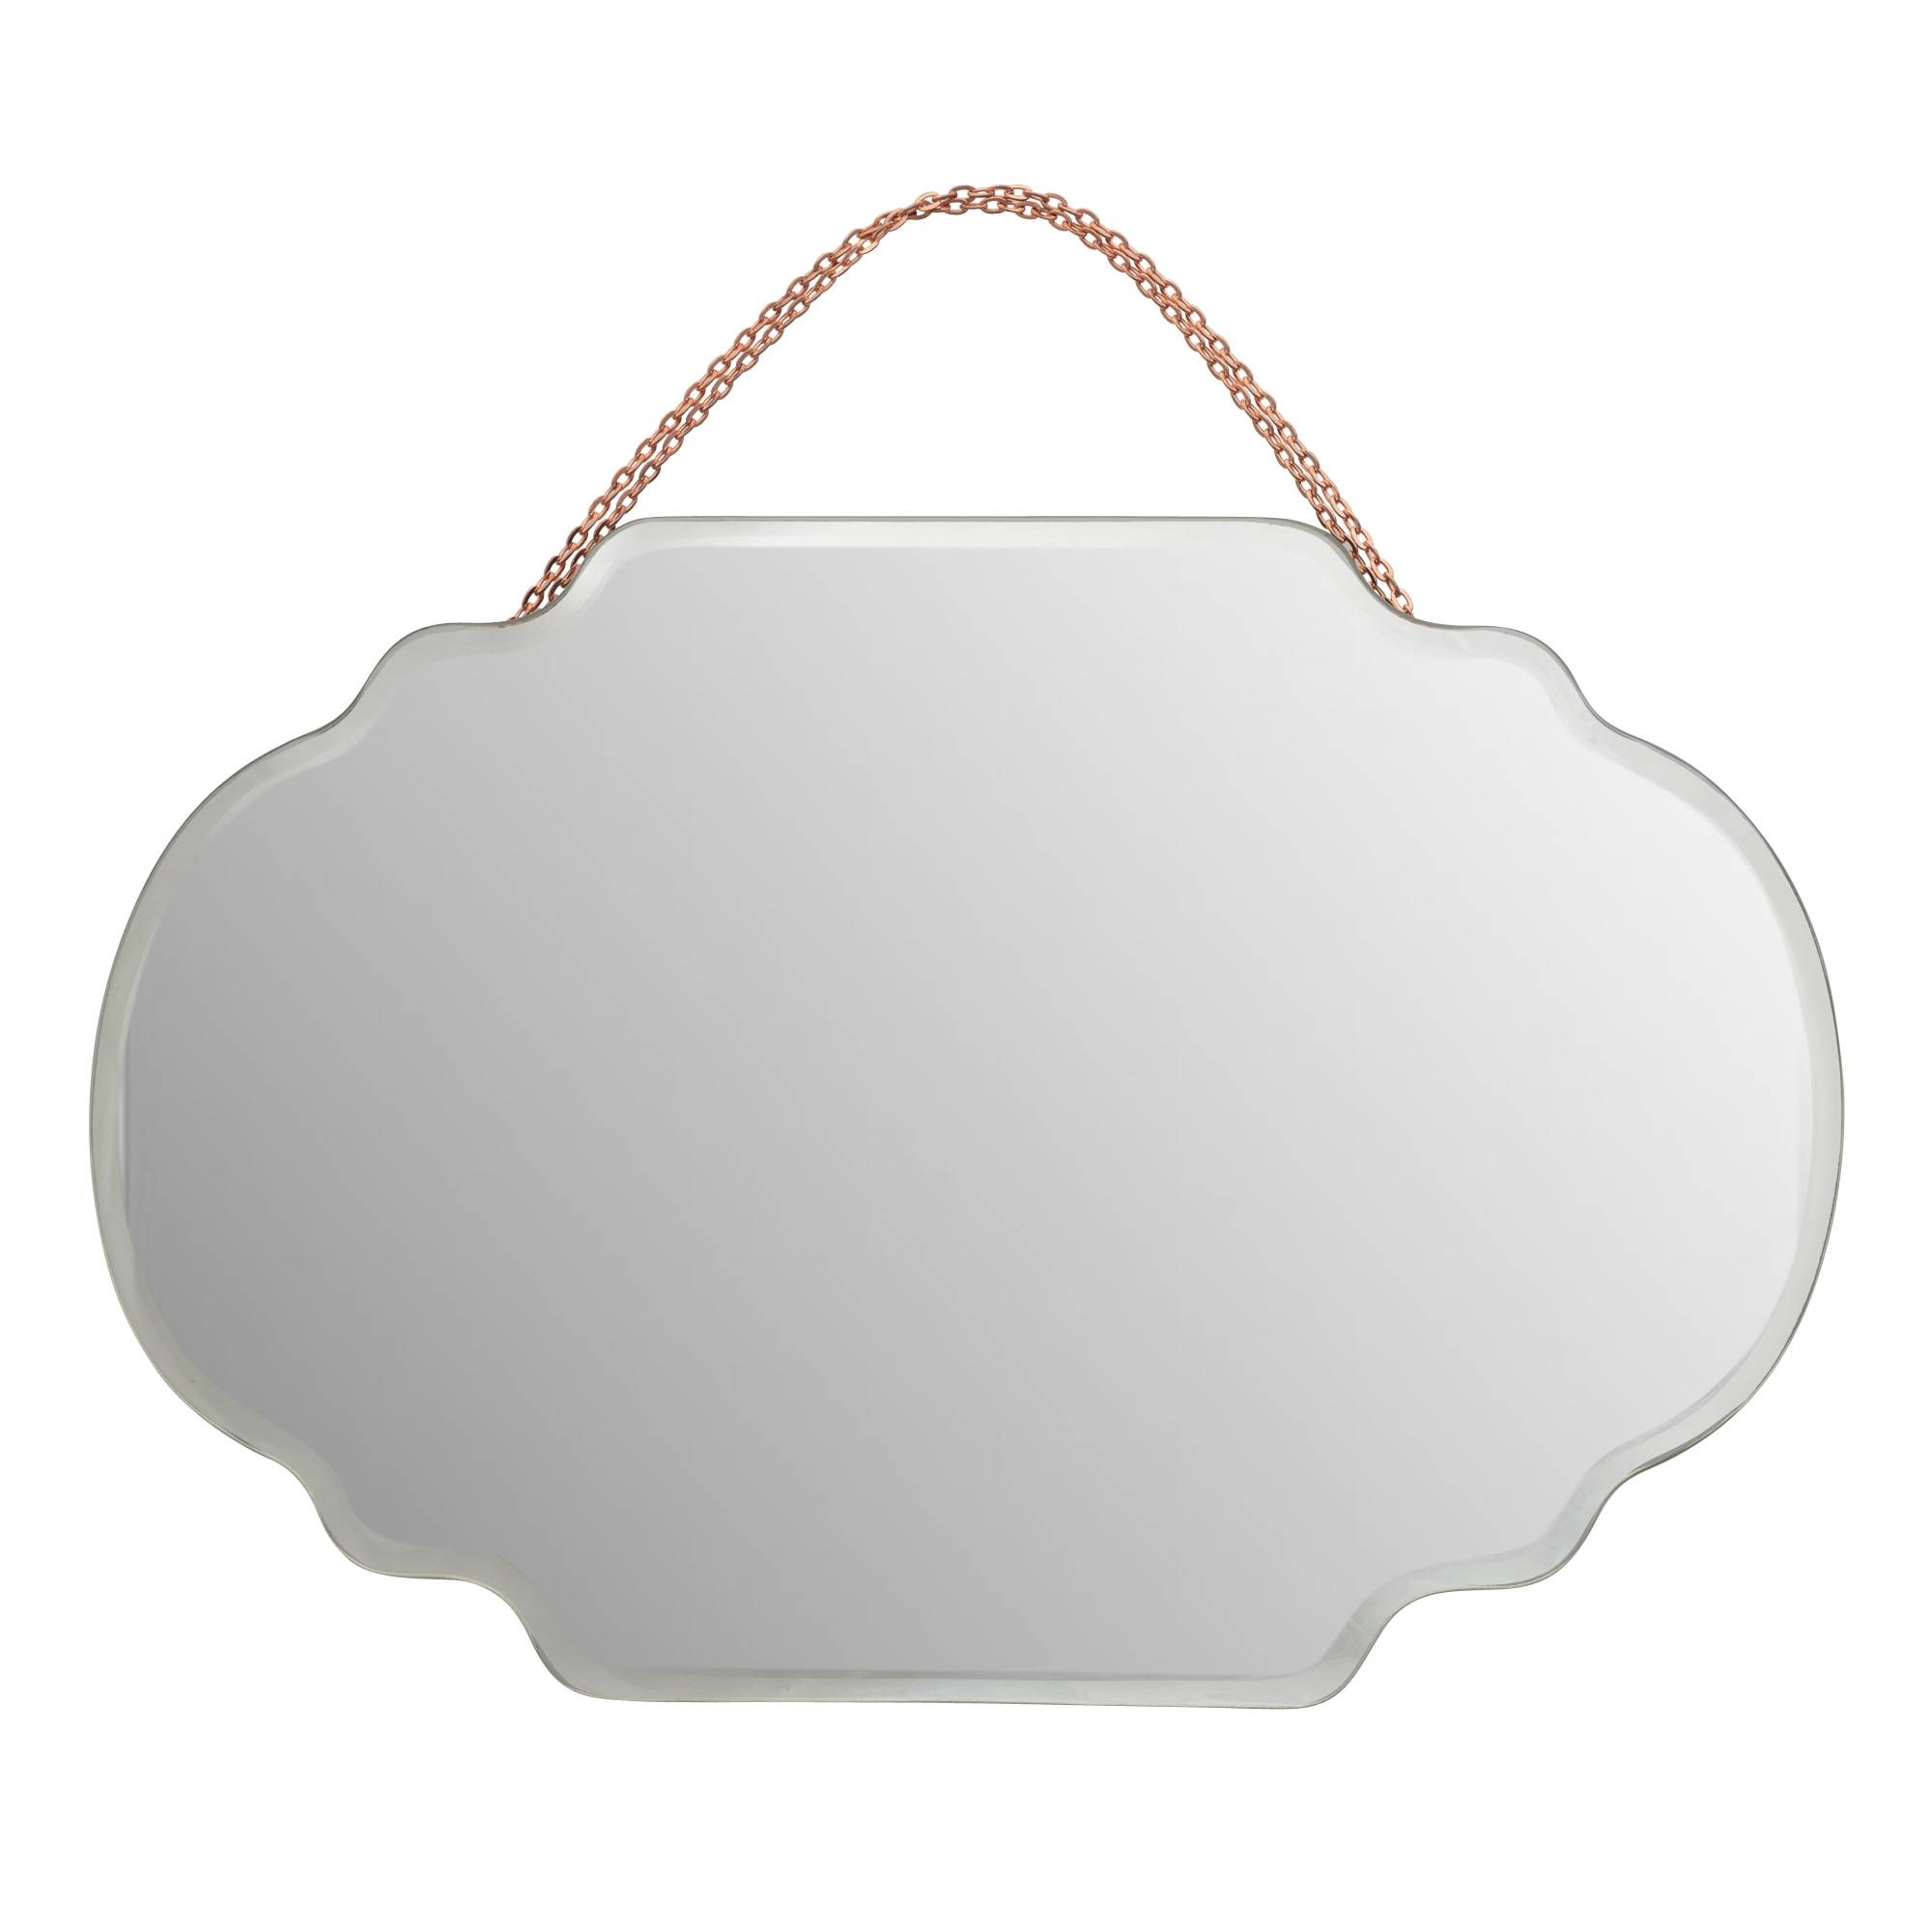 Large Art Deco Mirror | Oliver Bonas pertaining to Art Deco Large Mirrors (Image 11 of 15)